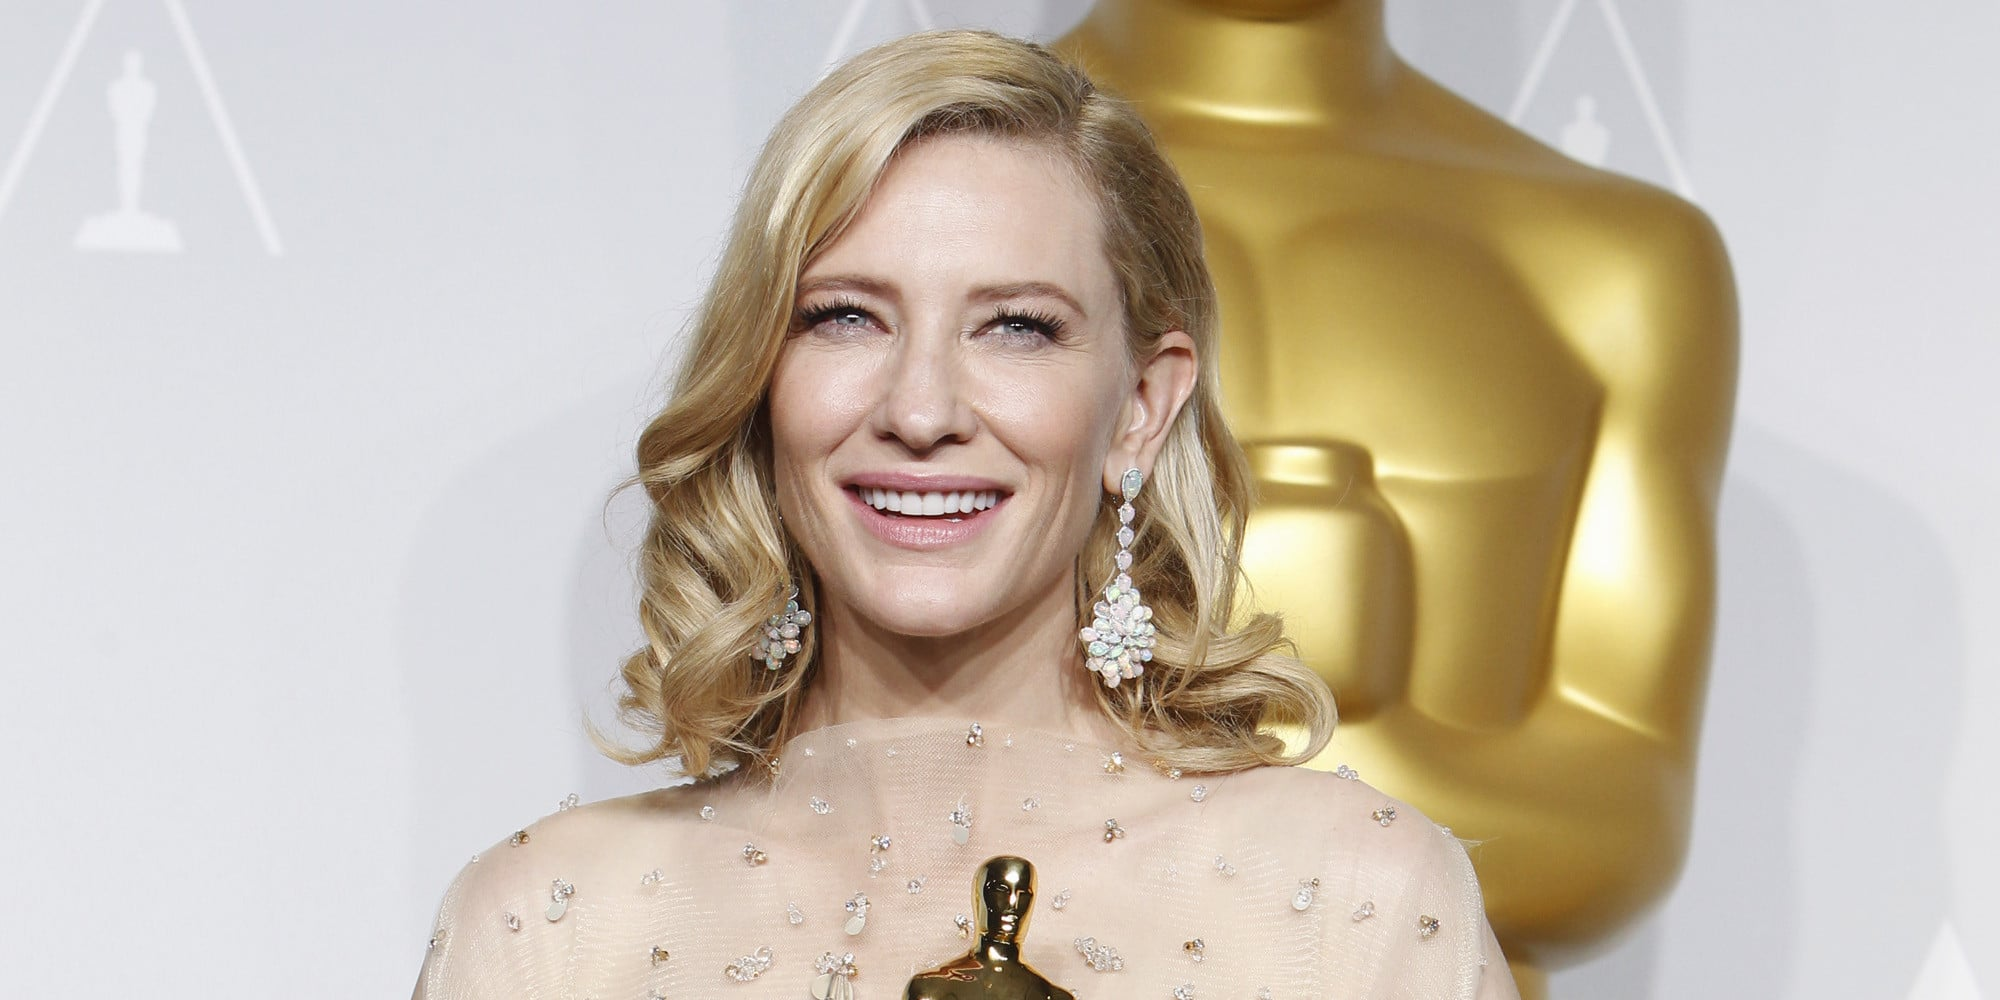 Cate Blanchett Net Worth 2017-2016, Biography, Wiki ... Cate Blanchett Wikipedia